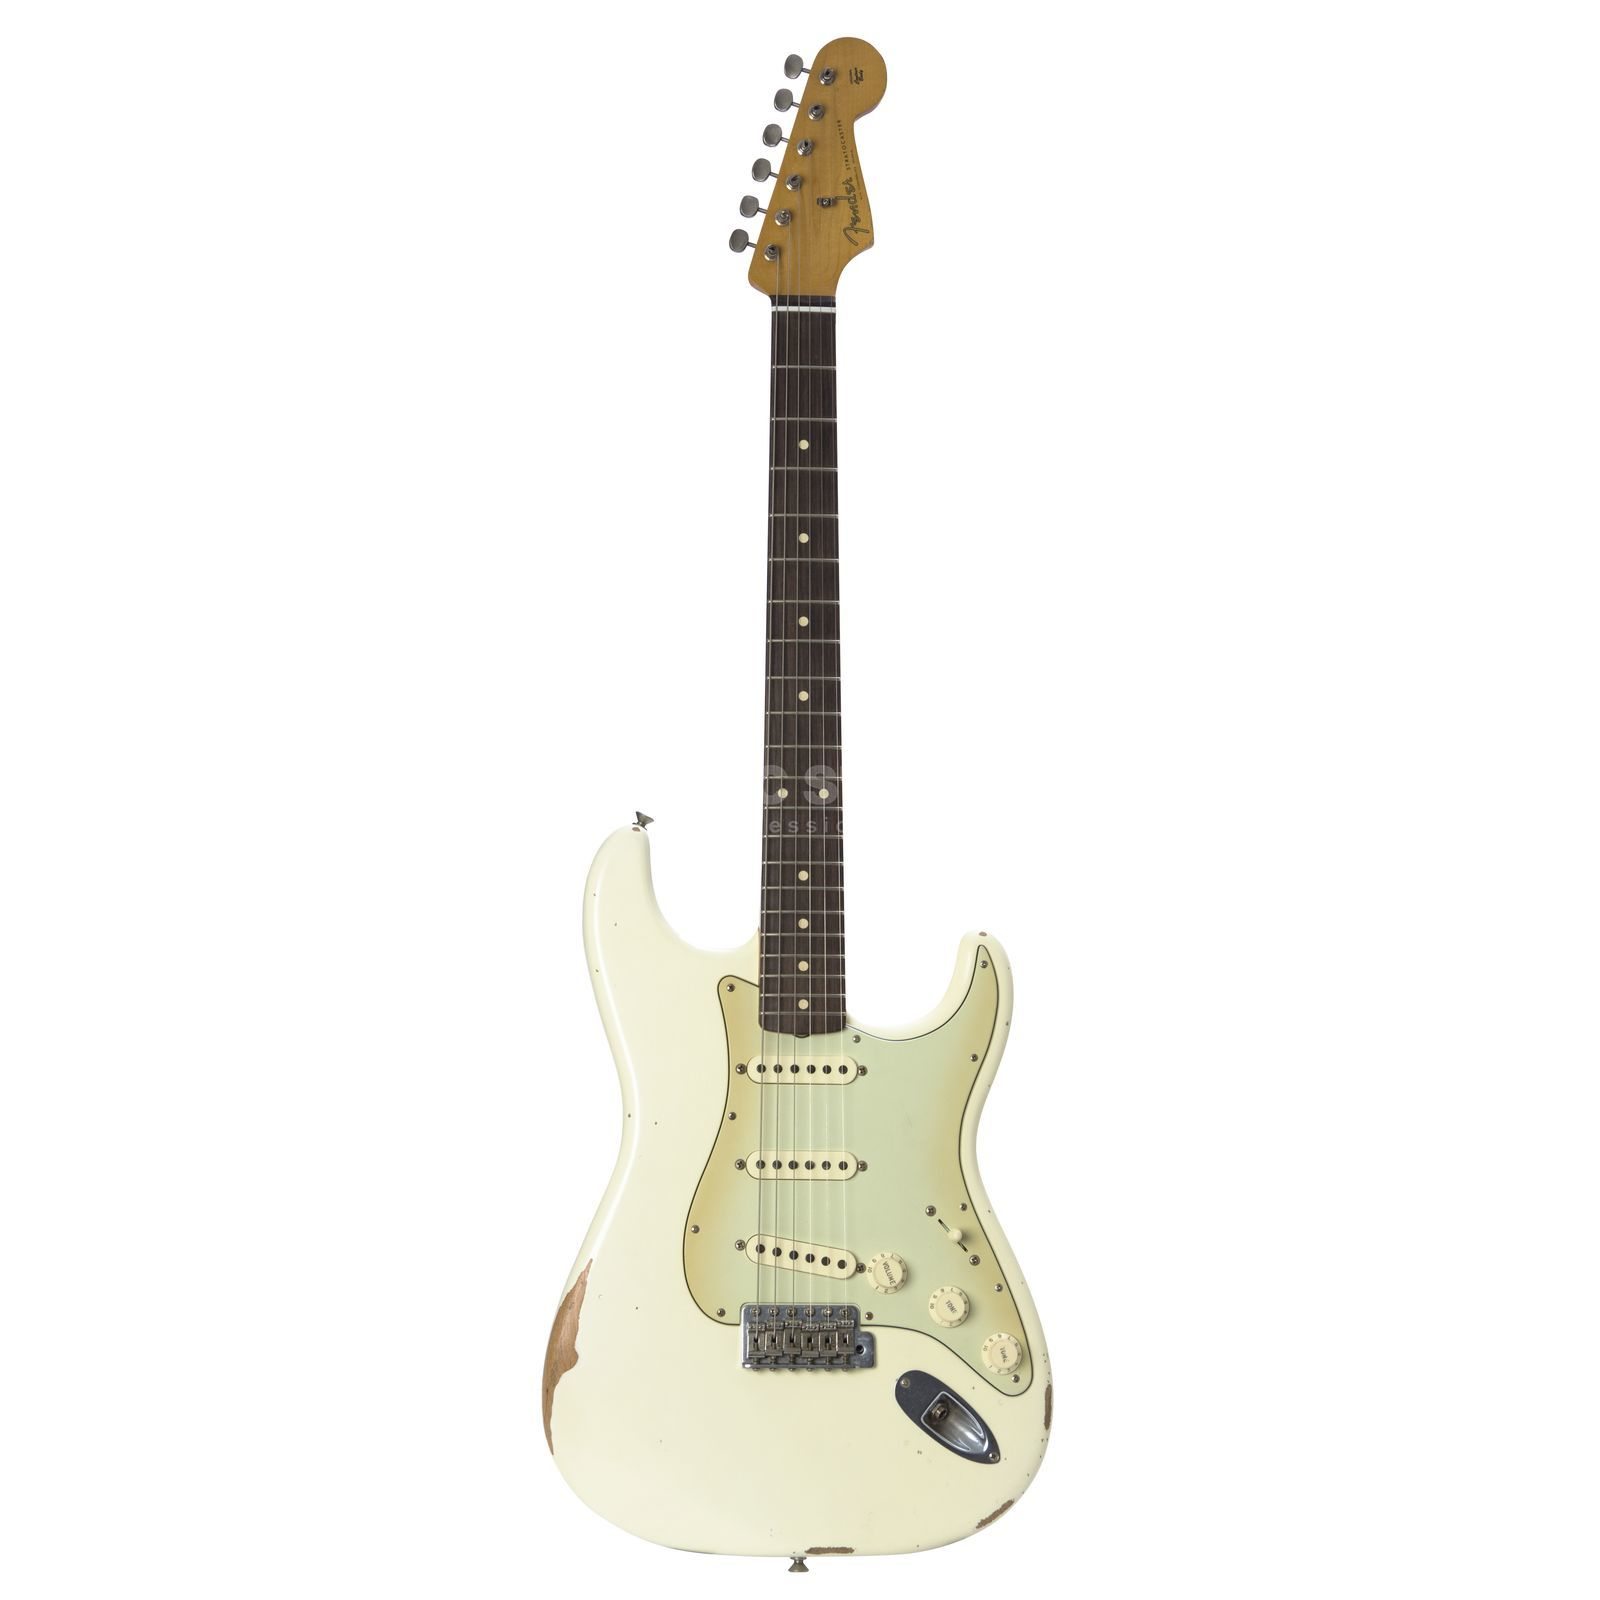 Fender Road Worn 60s Strat RW OWT Olympic White, inkl. Bag Produktbild